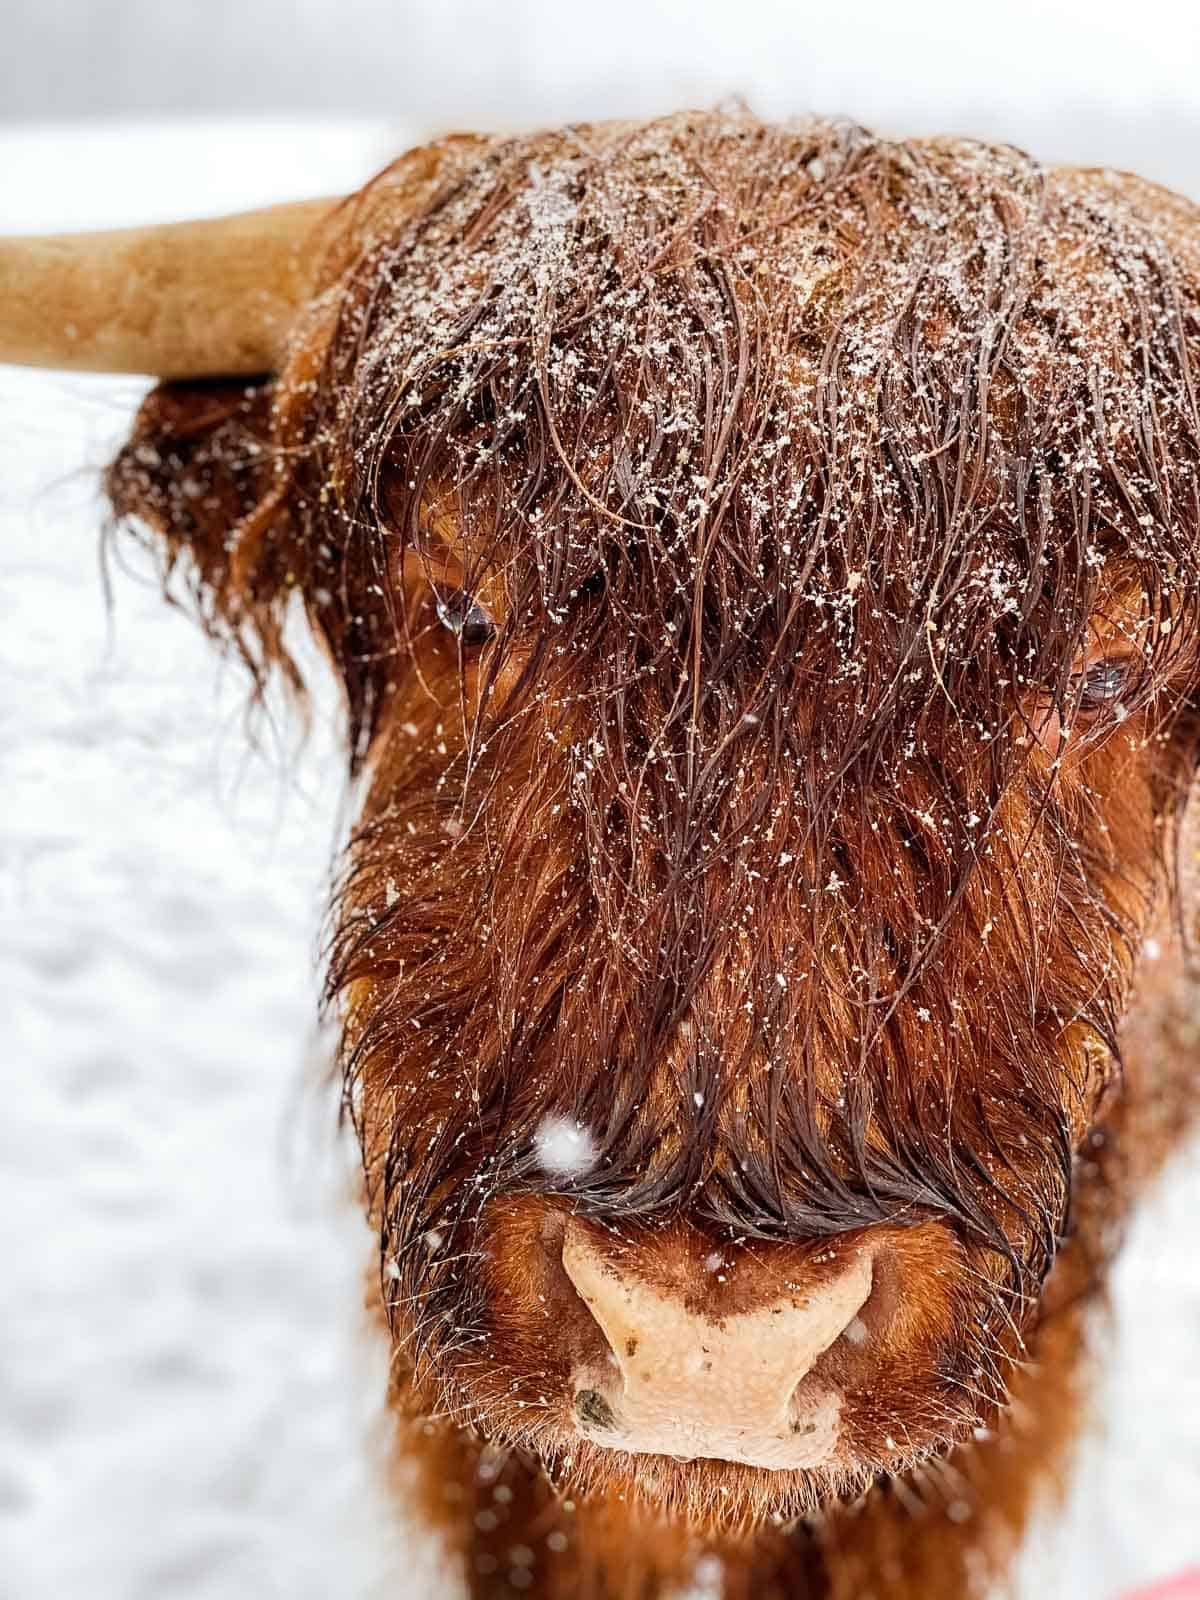 close up of brown highland cattle with snow on his fur